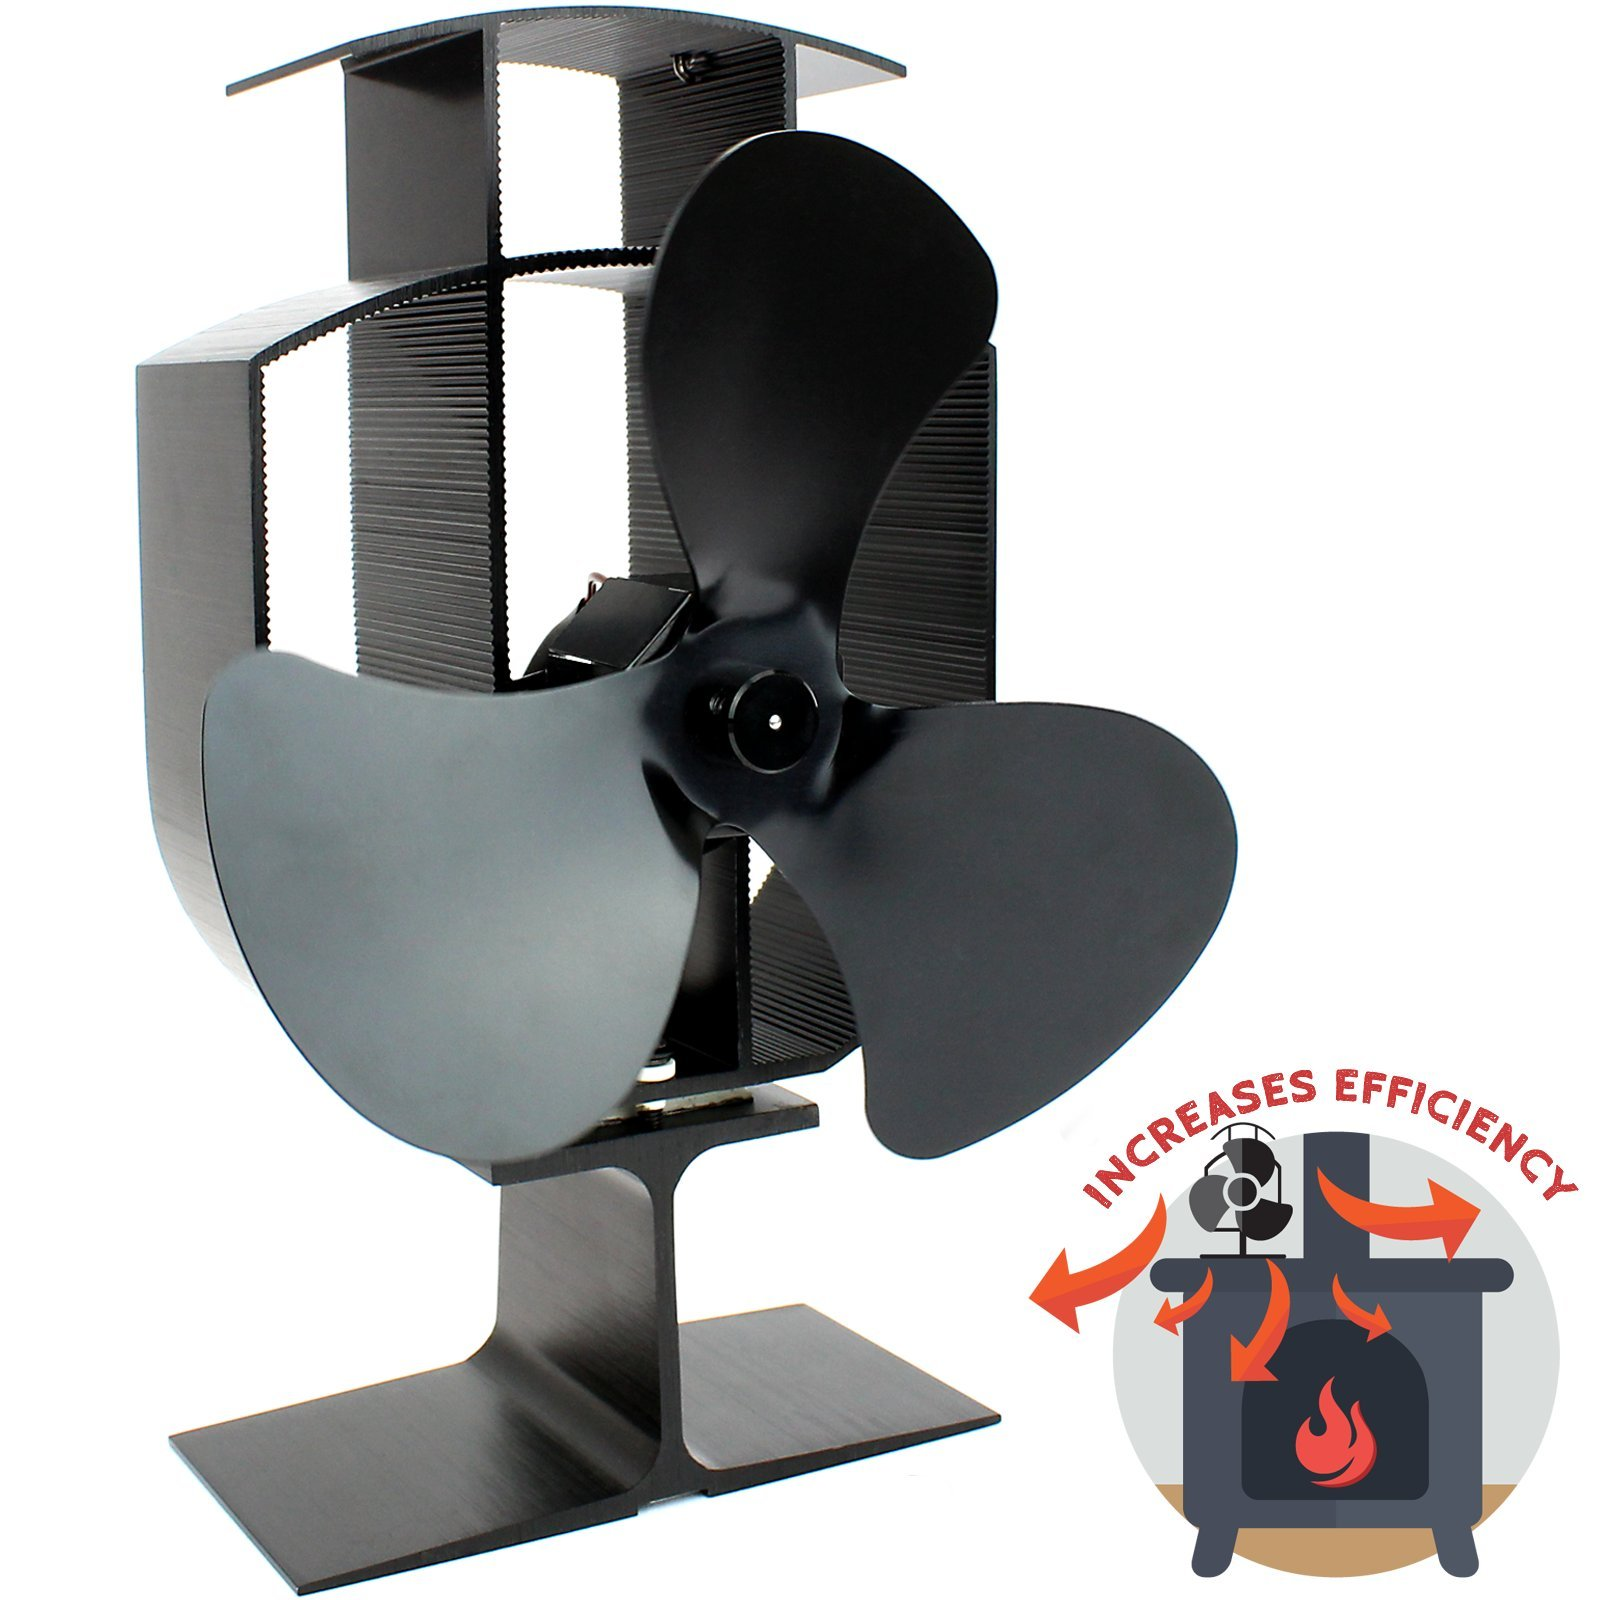 Heat Powered 3 Blade Stove Fan | Silent Operation | Fireplace Wood & Log Burner | Effective Heat Circulation | Eco Friendly | M&W by Maison & White